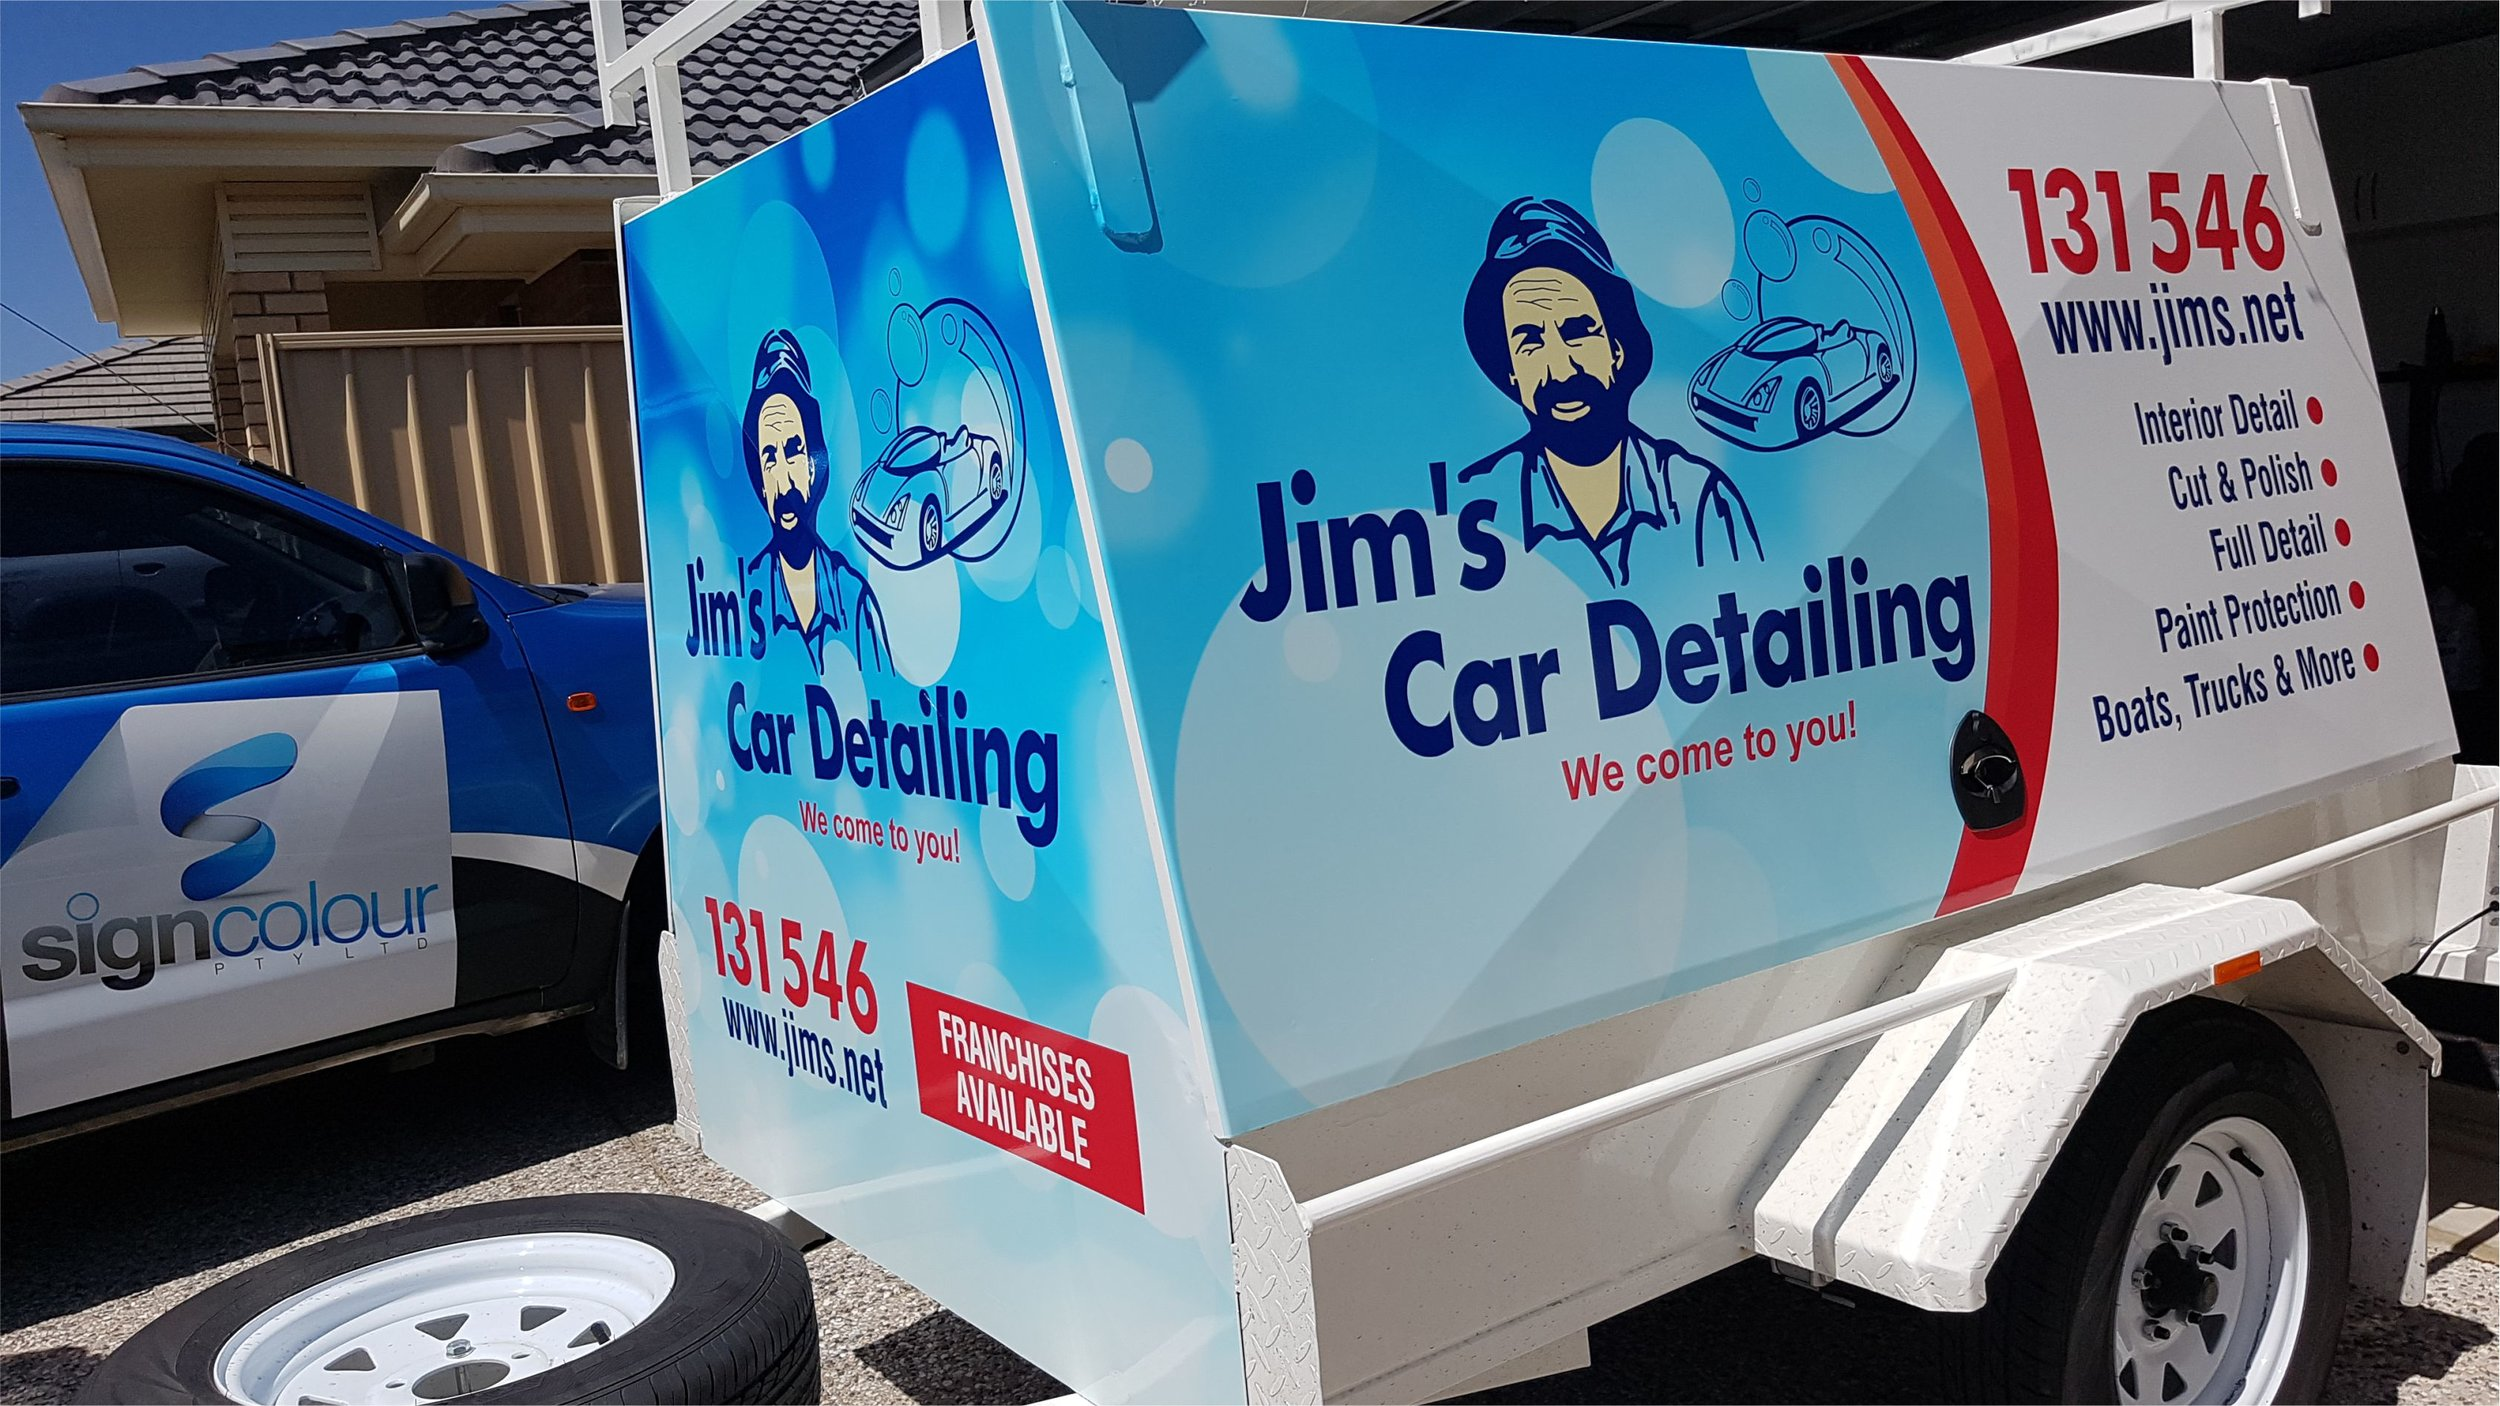 Jims Car Detailing - Jims Cleaning - Sign Colour - Signage Adelaide - Signage Lonsdale - Lonsdale Signage - Lonsdale Signs - Aldinga Signs - Signs Aldinga.jpg